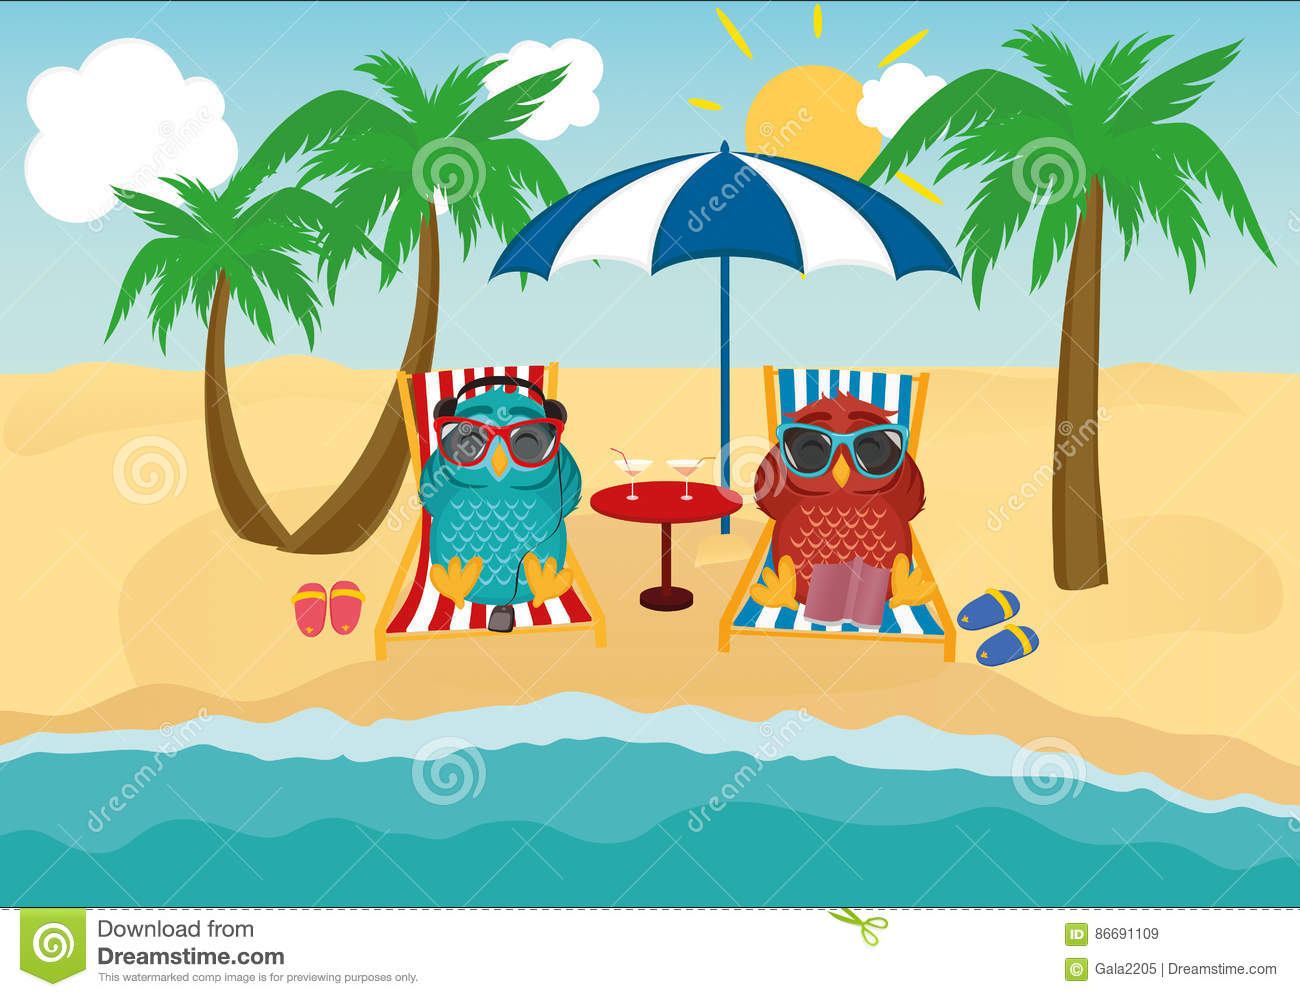 lay down beach chairs black wooden chair owls couple under umbrella vector illustration